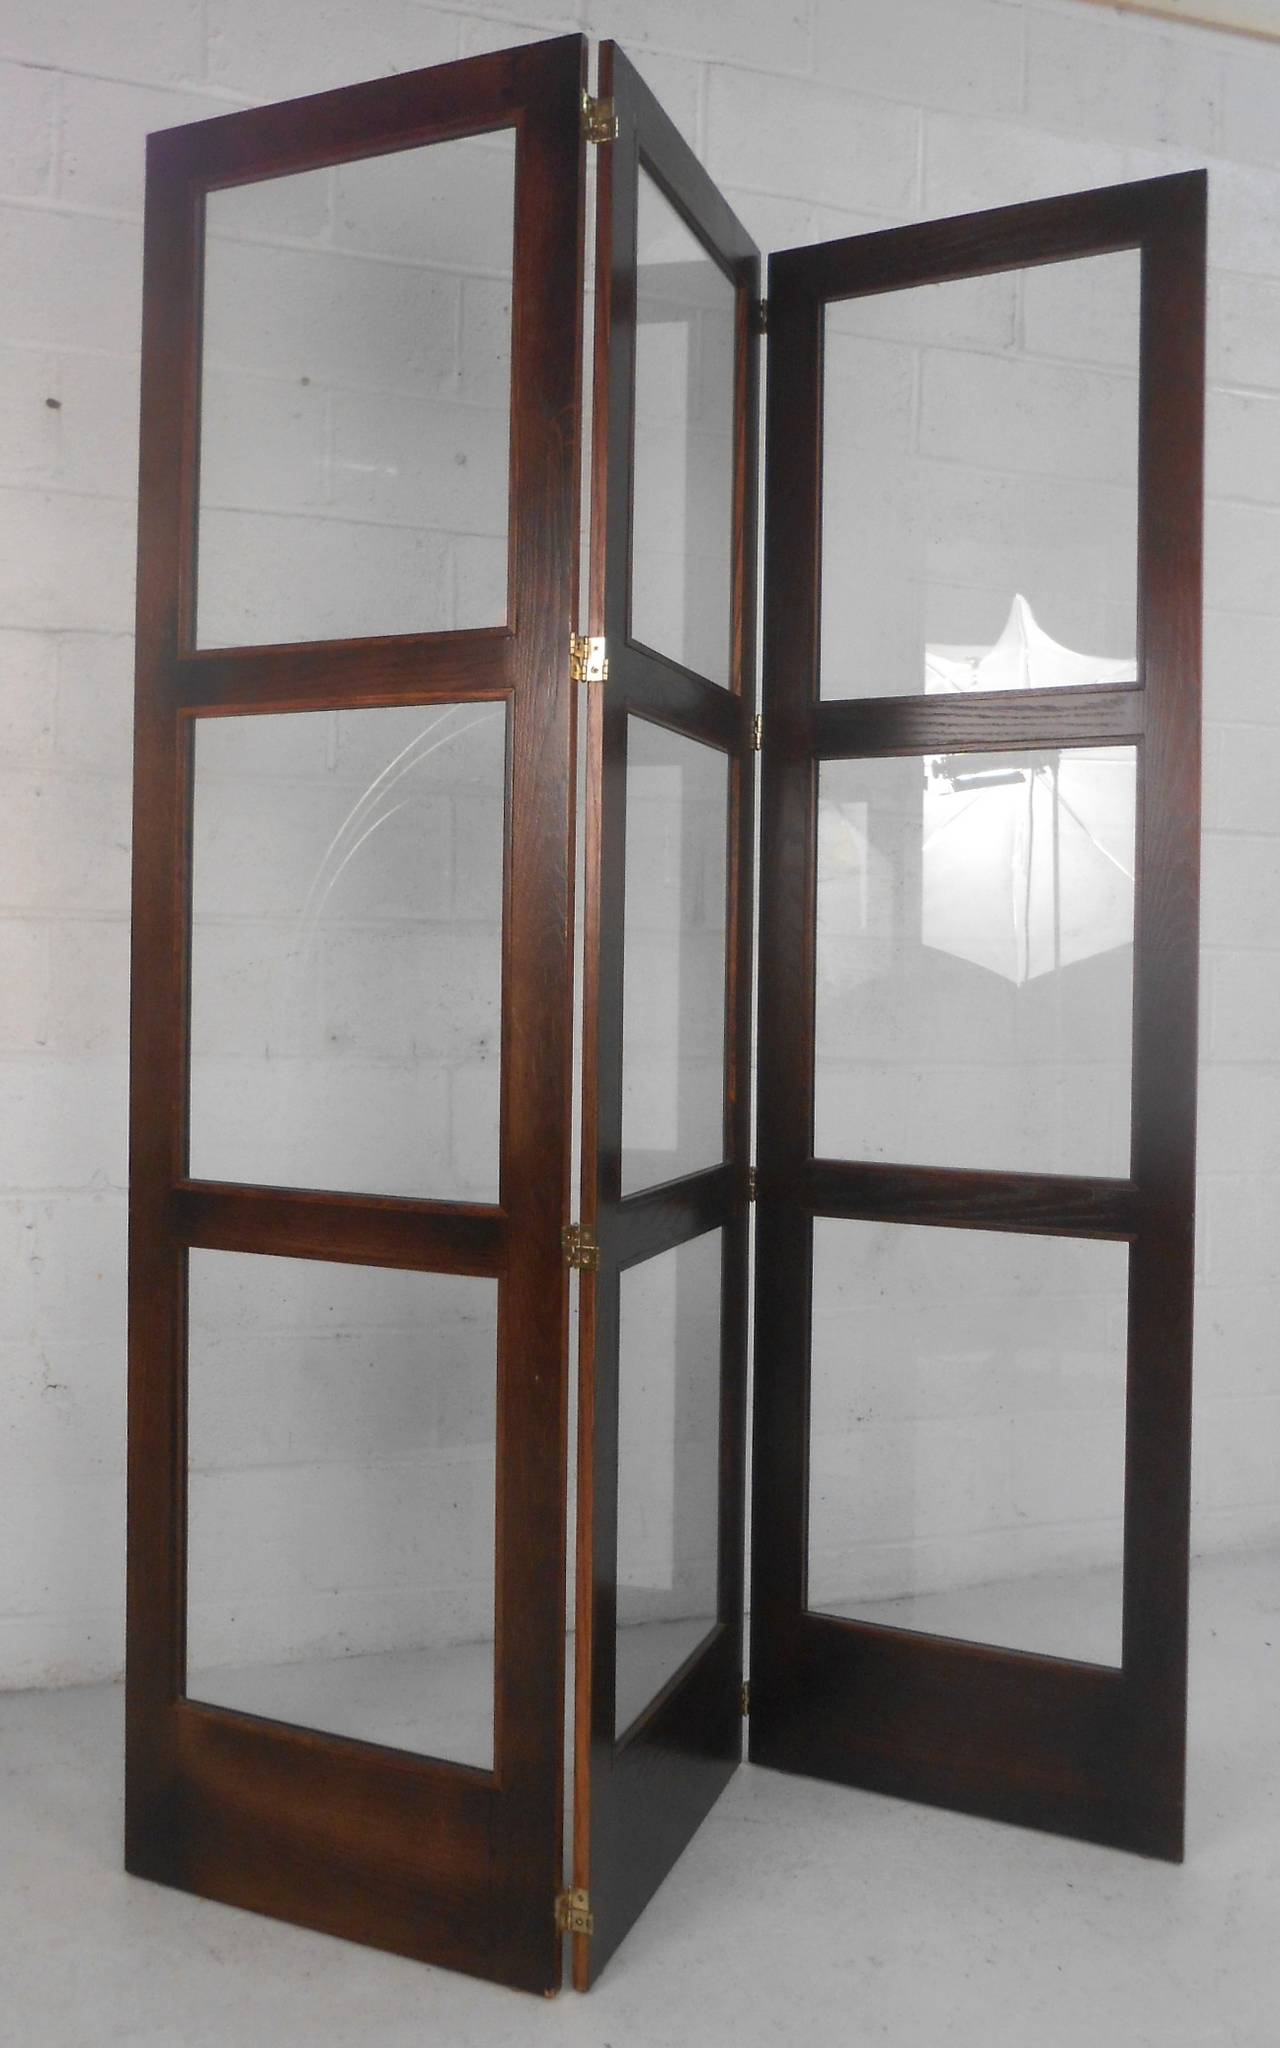 Folding Screen Unique Mid Century Modern Glass And Hardwood Room Divider Folding